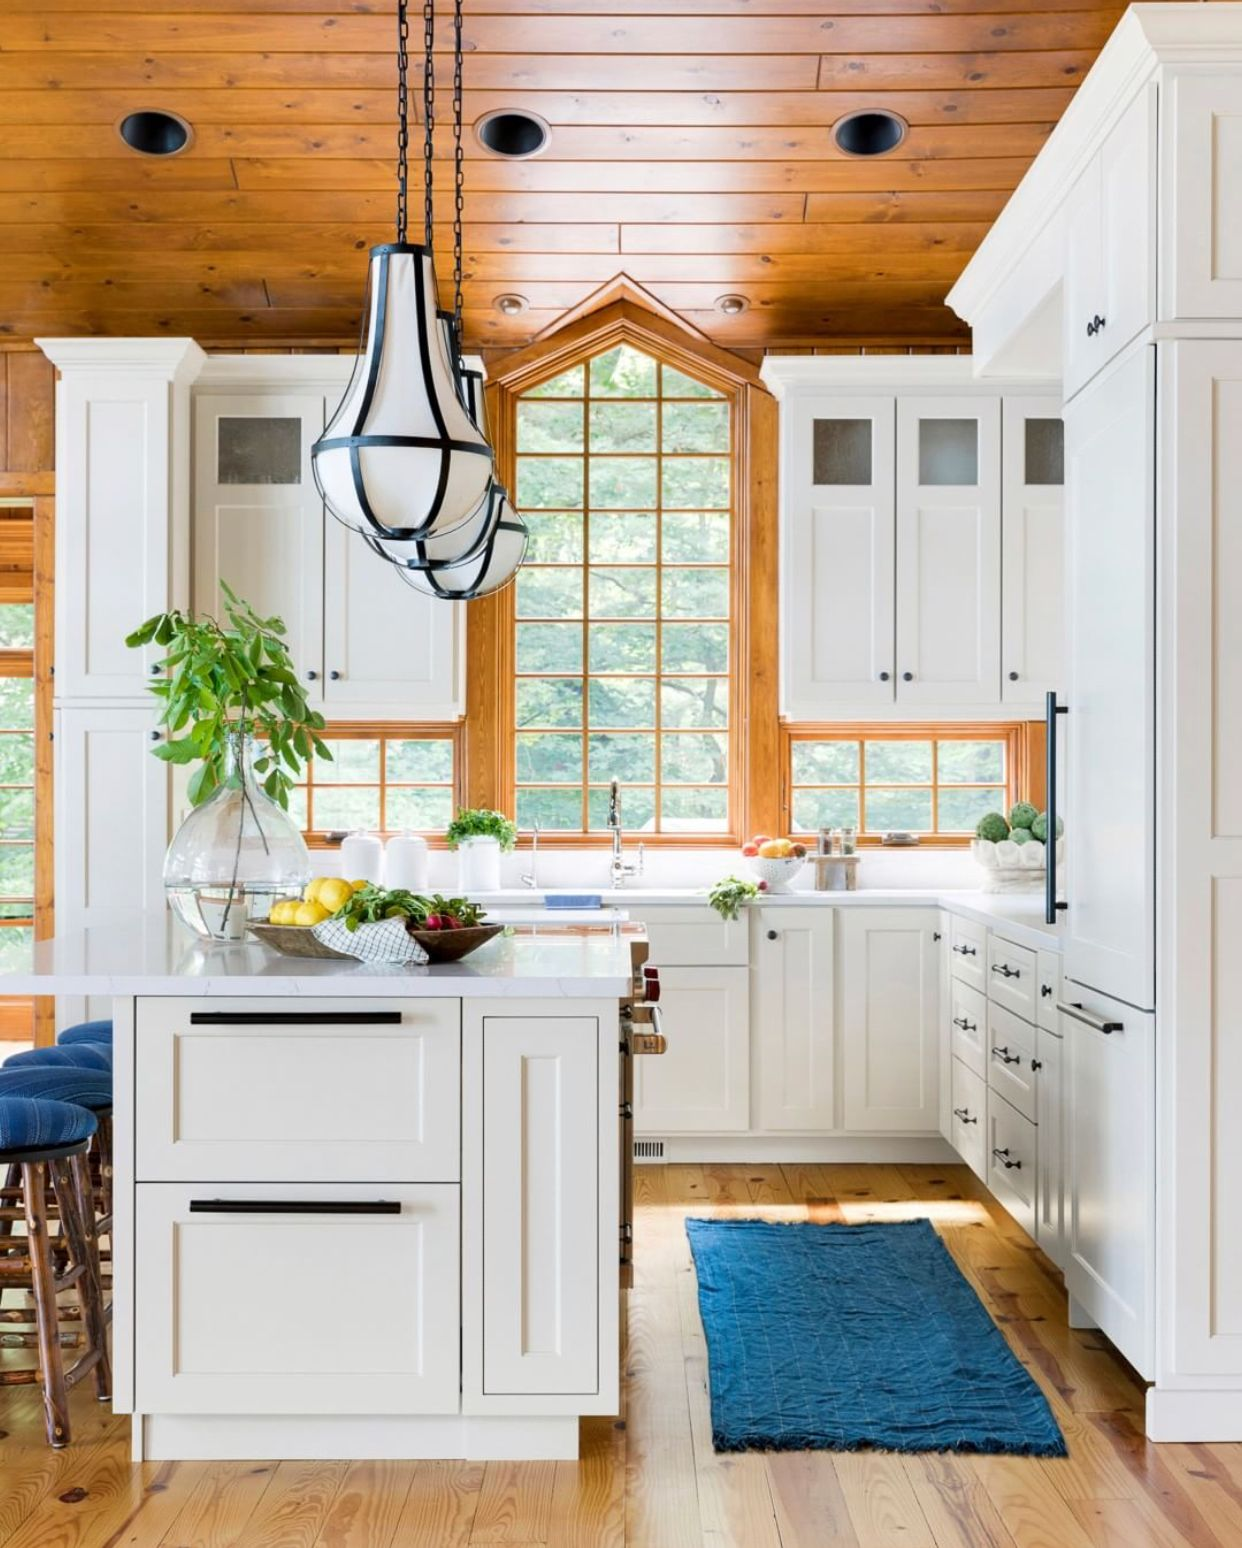 bria hammel interiors wood ceiling and window trim in white kitchen cabin feel interior on kitchen interior with window id=49481